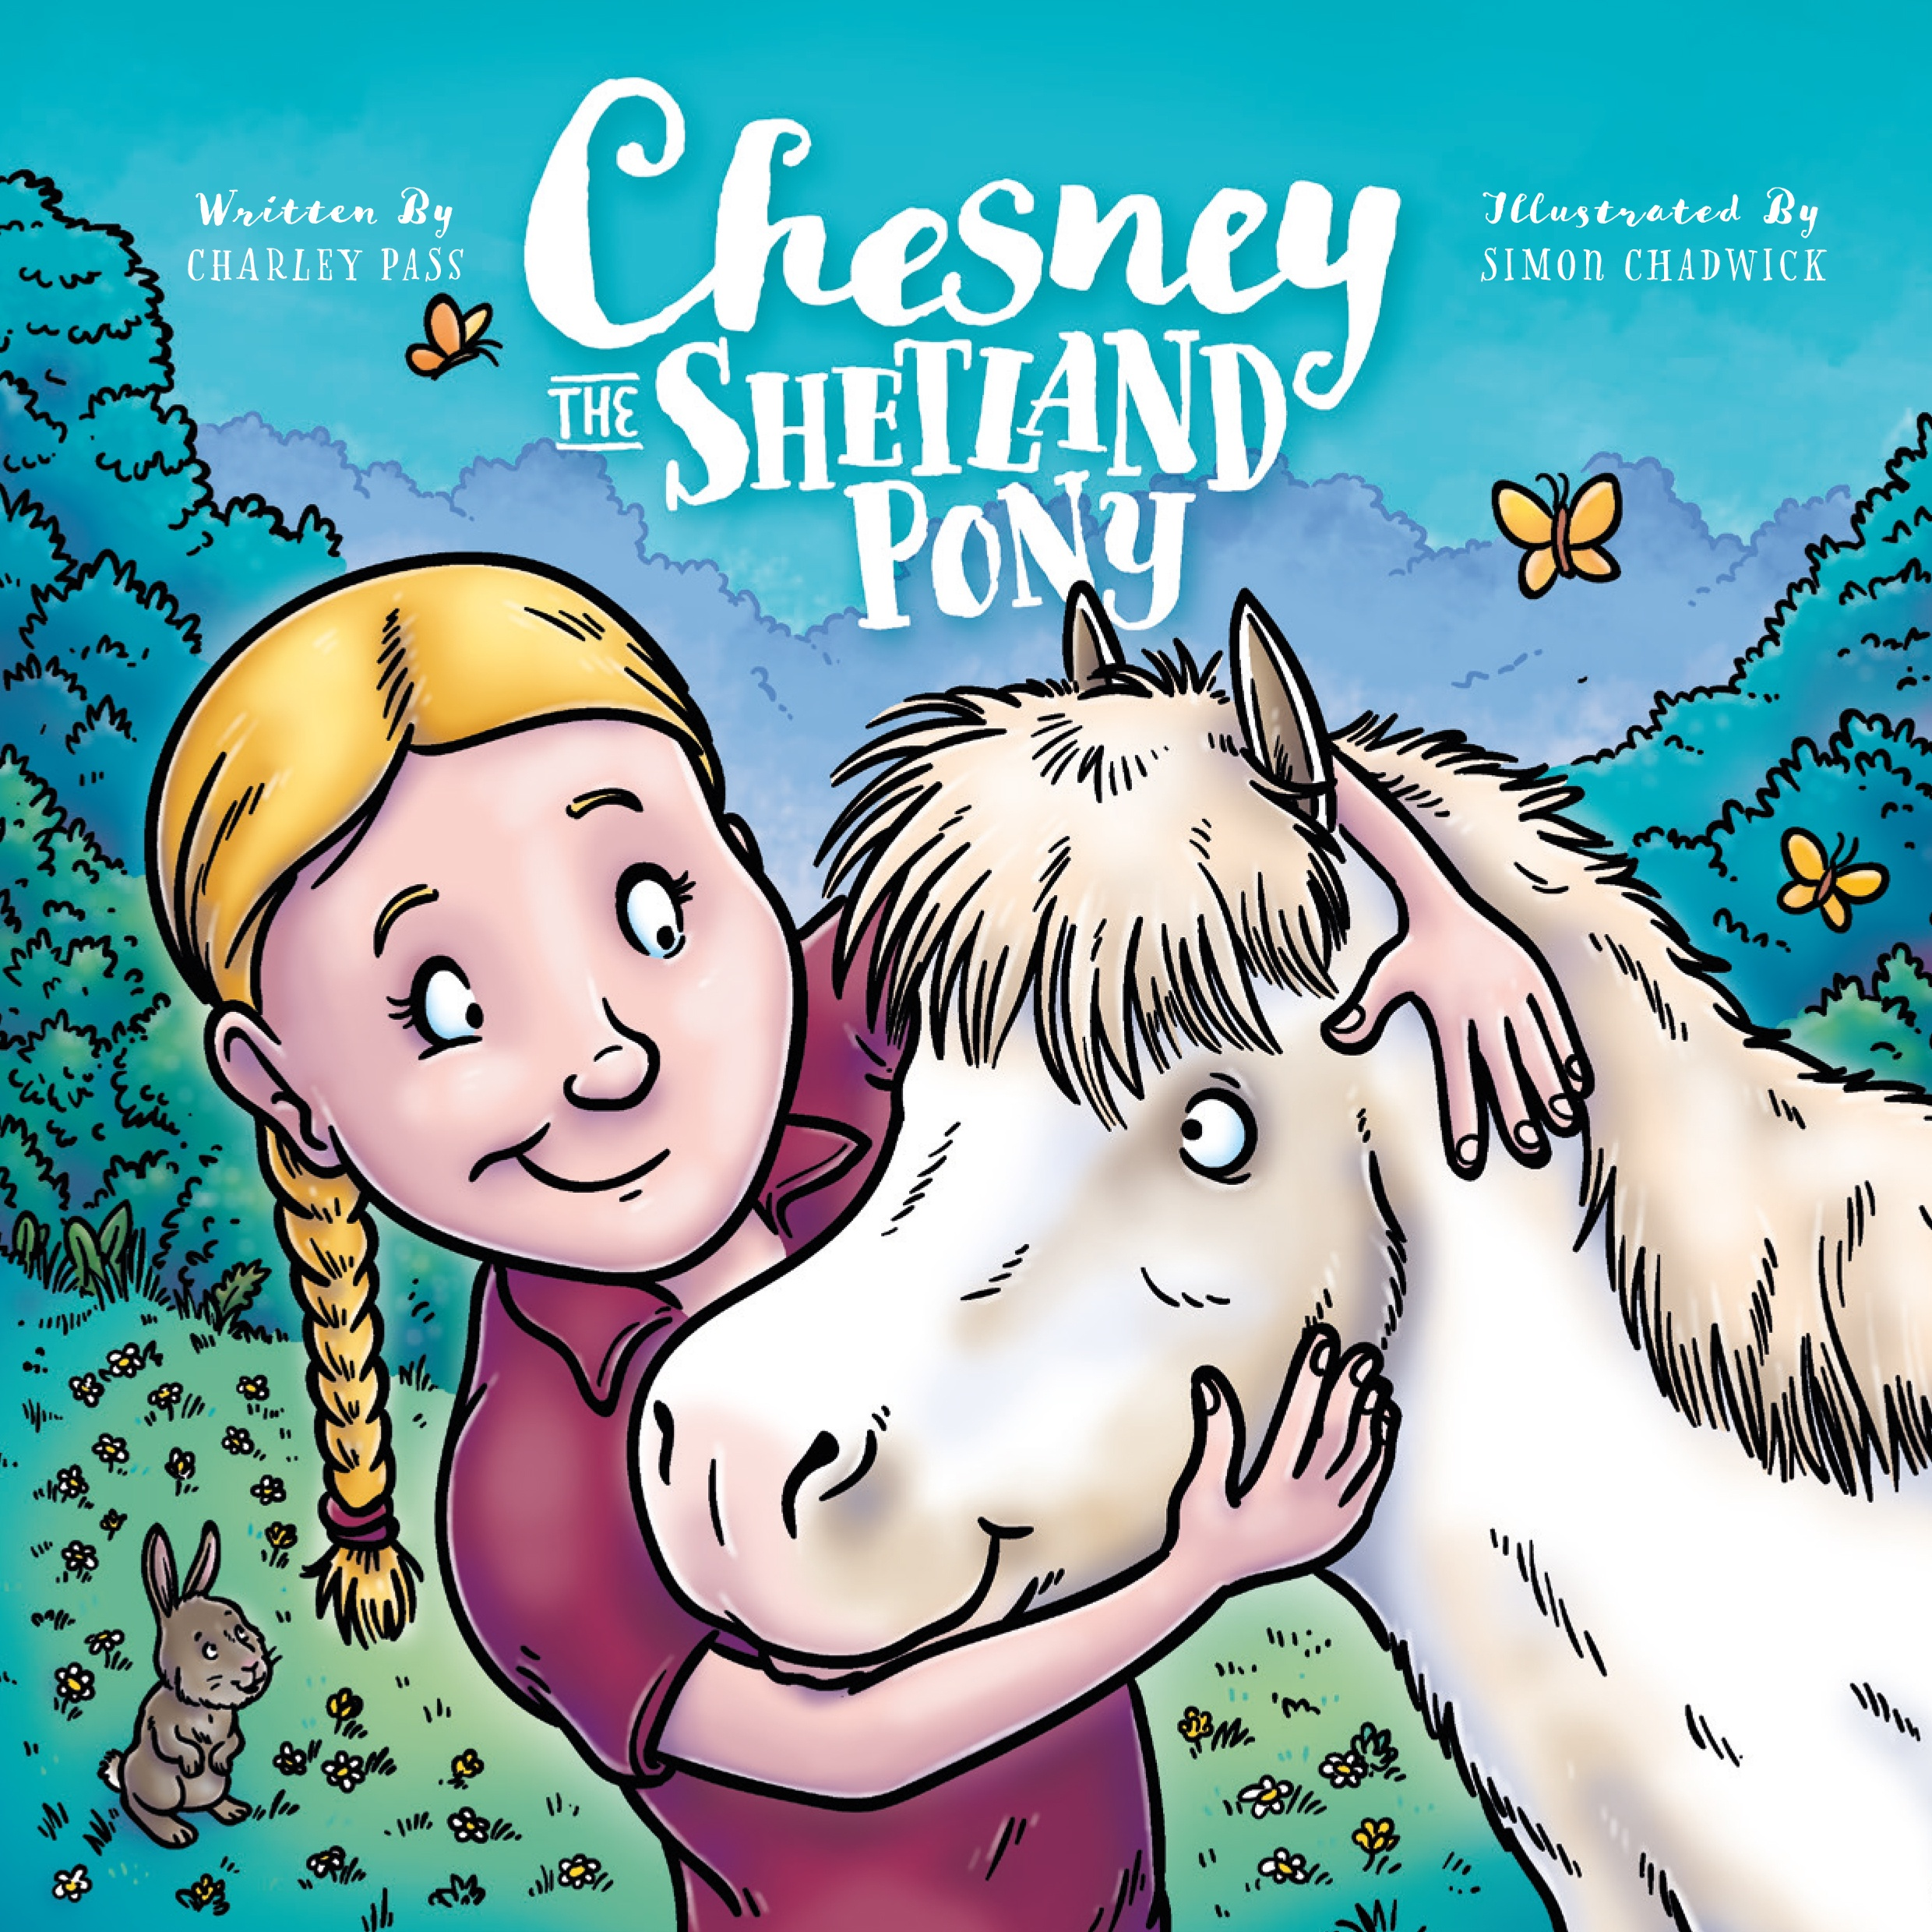 Cover for Chesney The Shetland Pony from Ceratopia Books